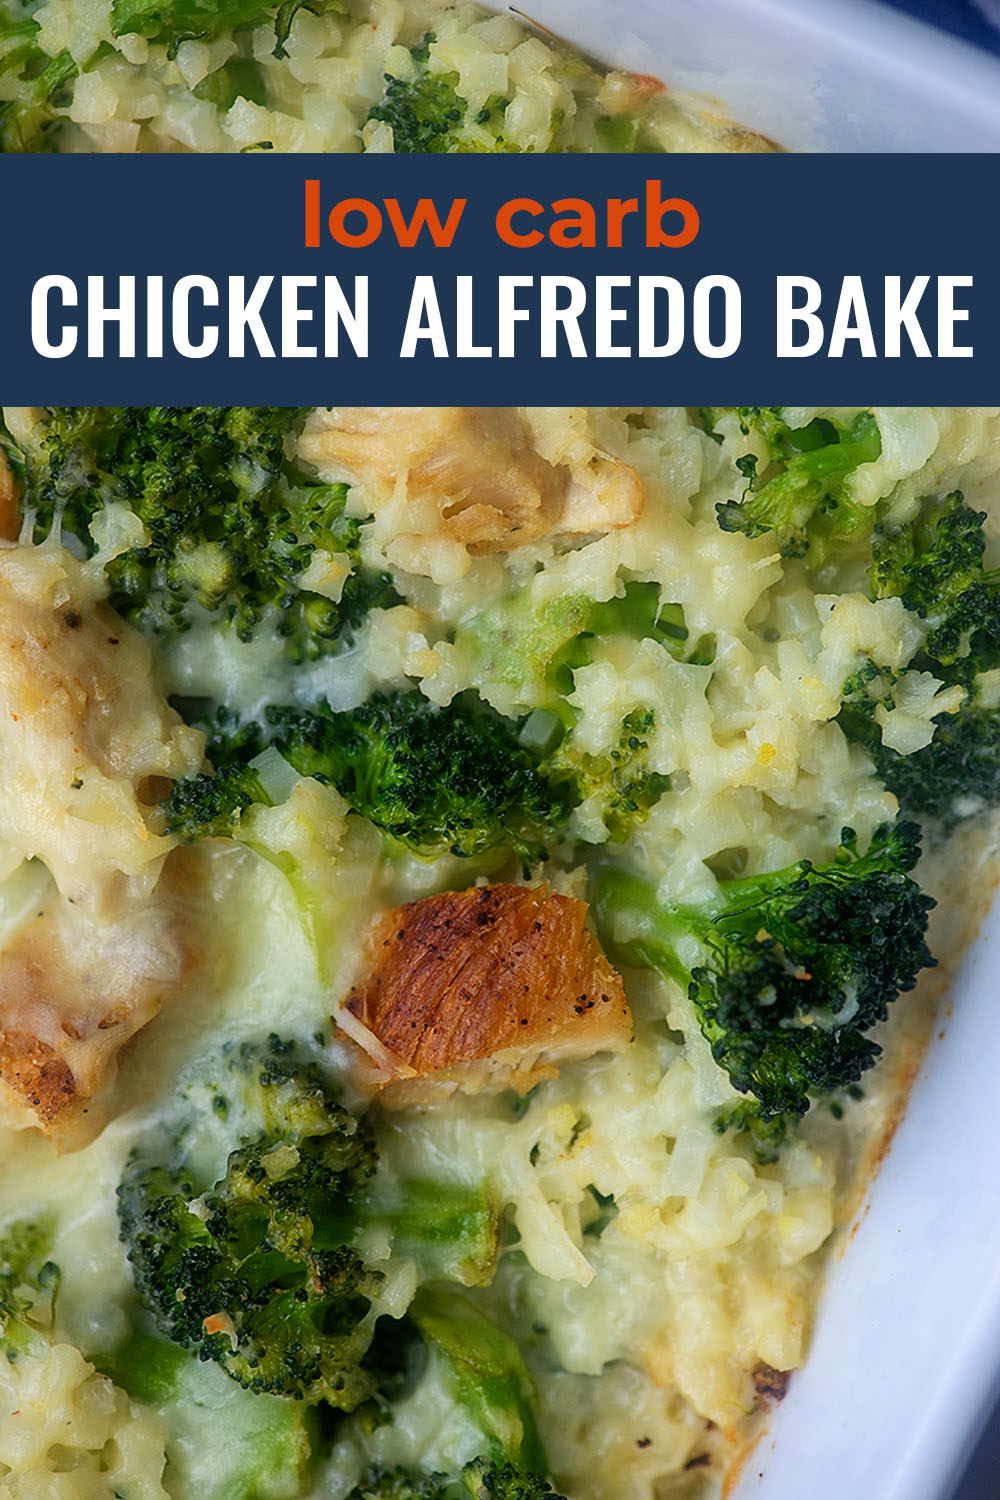 Low Carb Chicken Broccoli Alfredo Bake This casserole is packed with veggies and Alfredo sauceso easy too